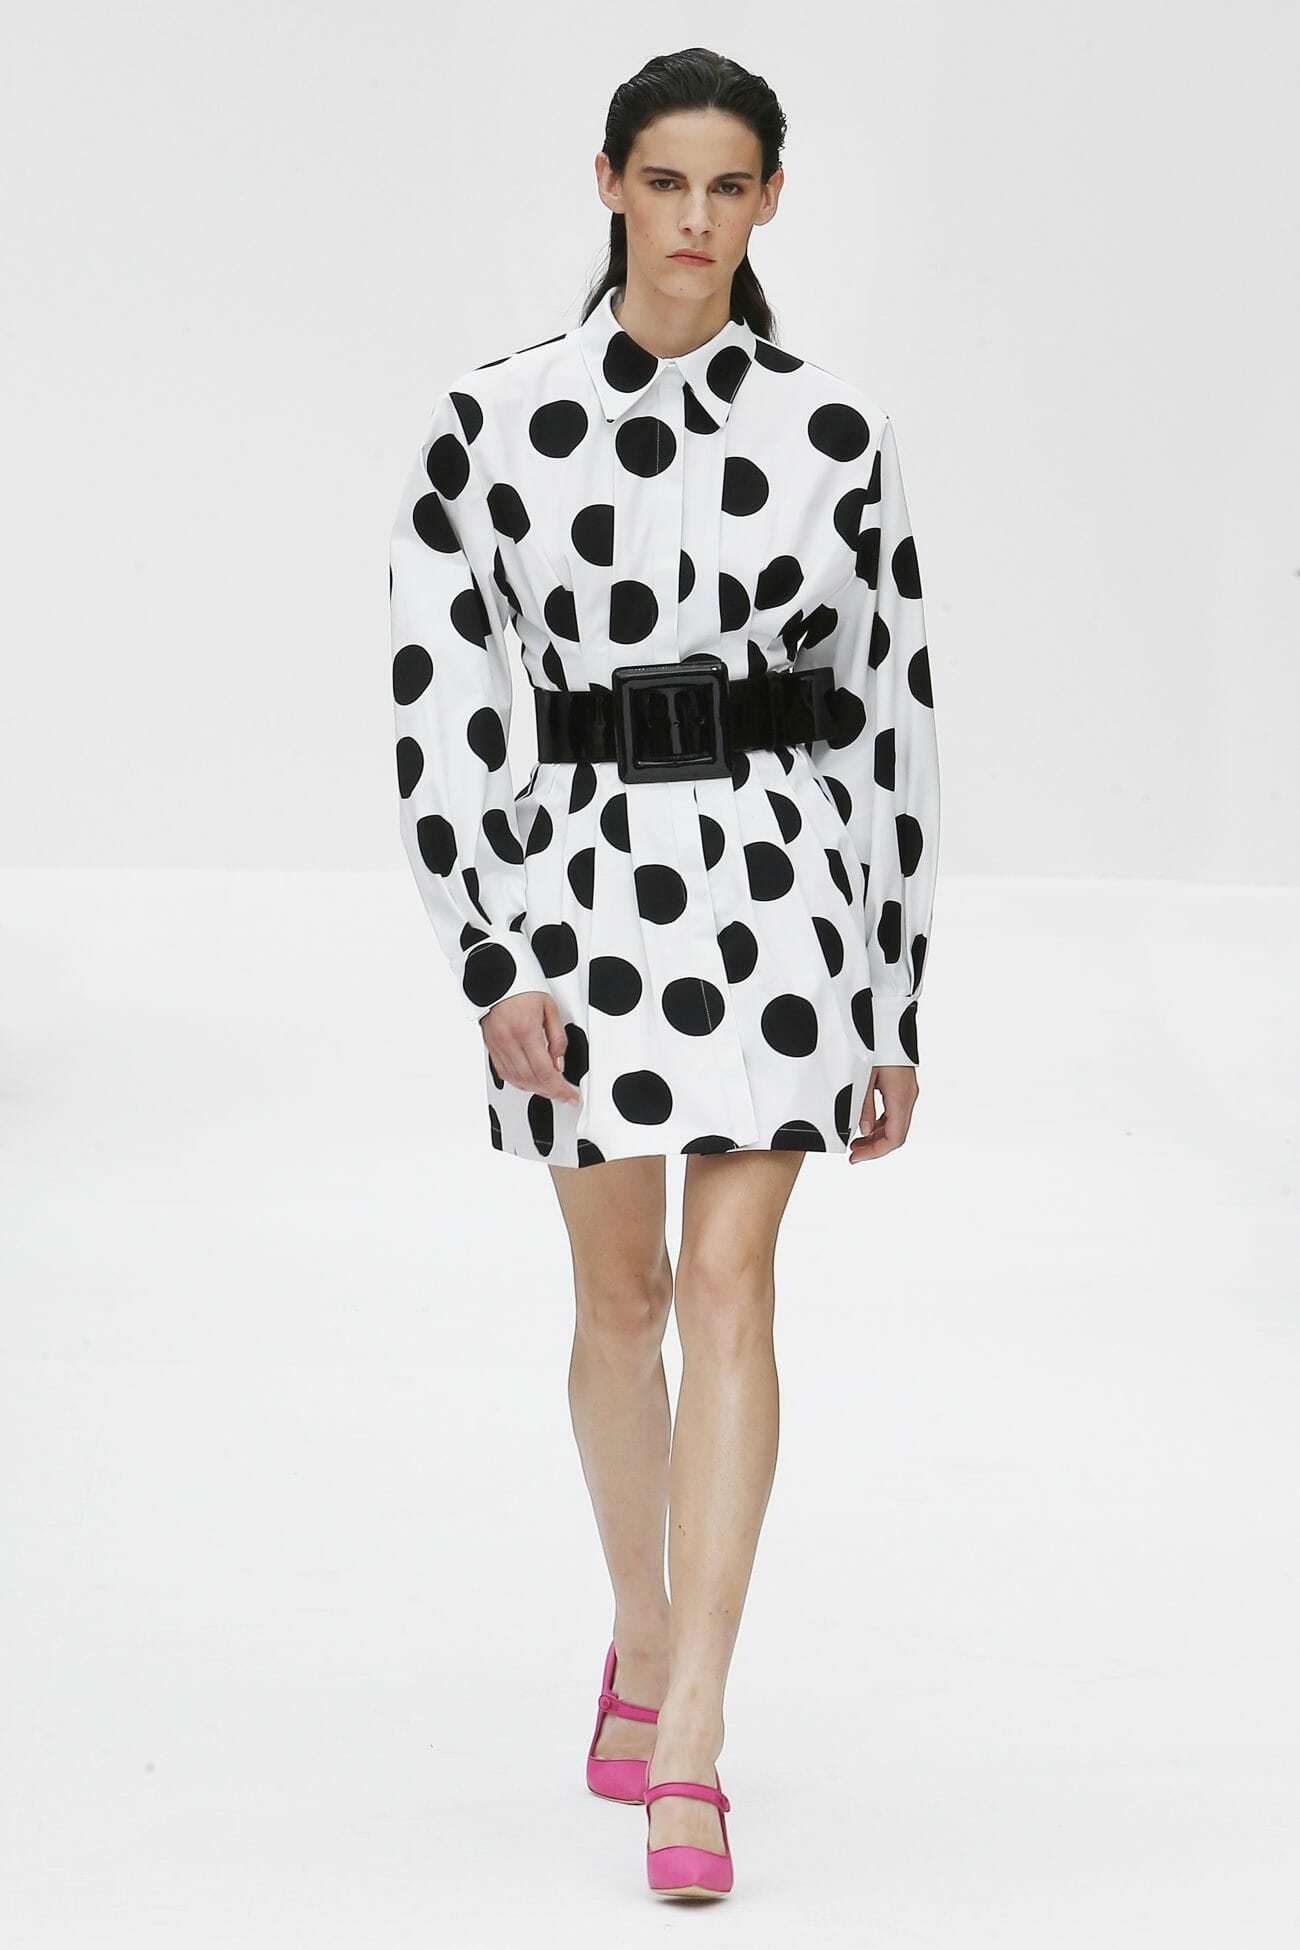 Carolina Herrera New York polka dots white dress